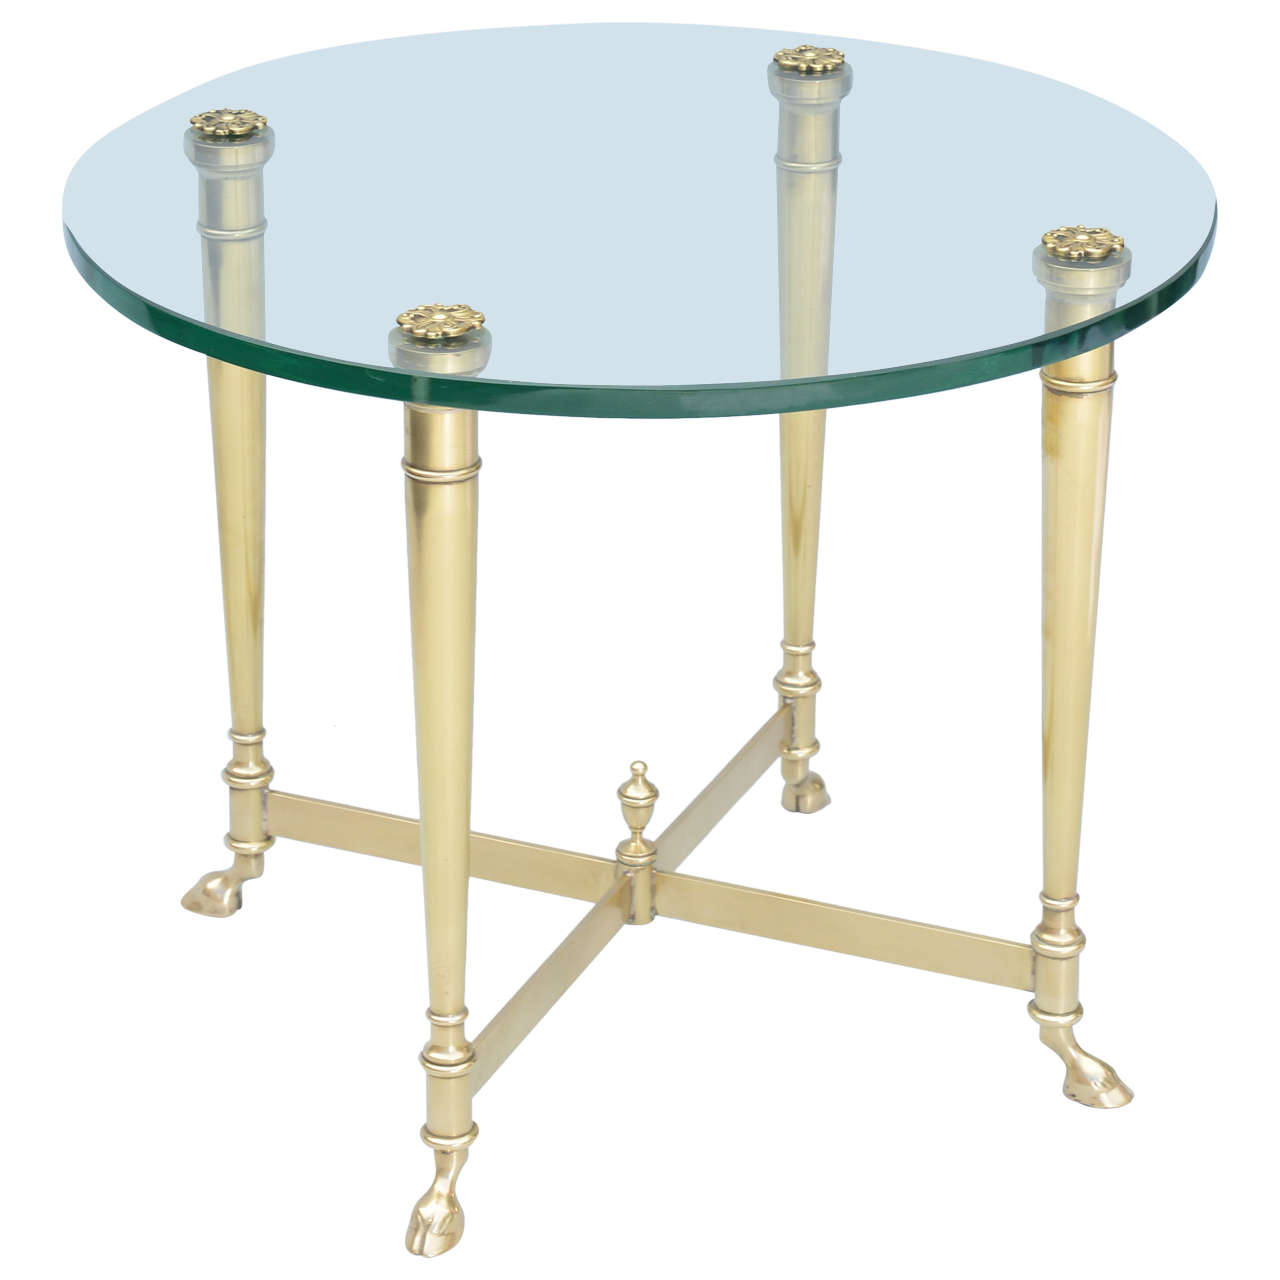 Polished Brass End Table With Glass Top On Hooved Feet For Sale At